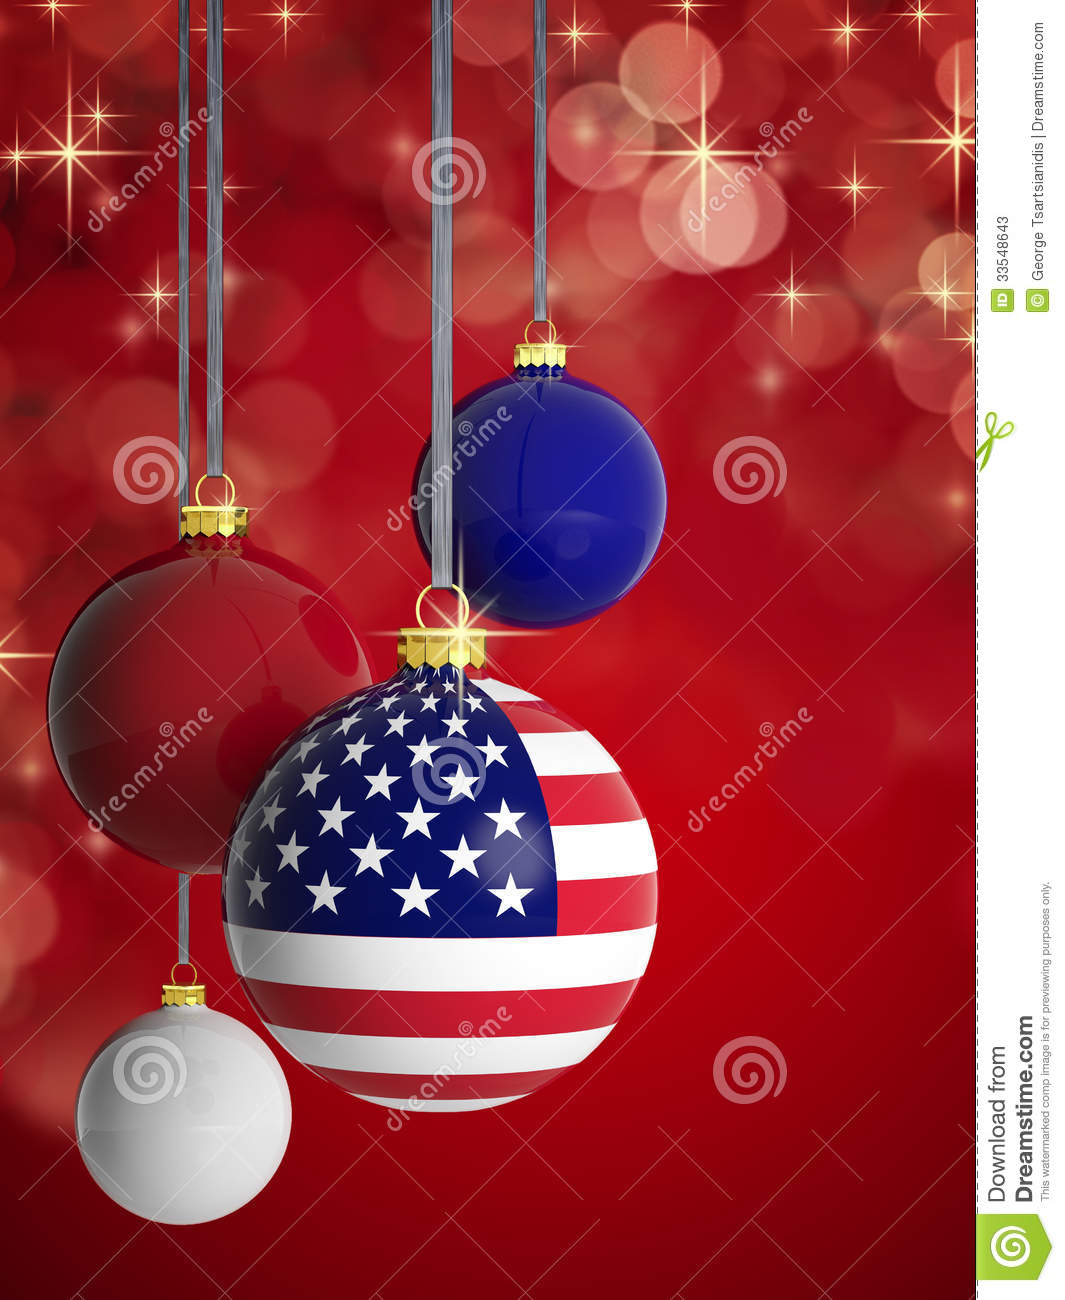 Christmas Balls With USA Flag Stock Photos - Image: 33548643